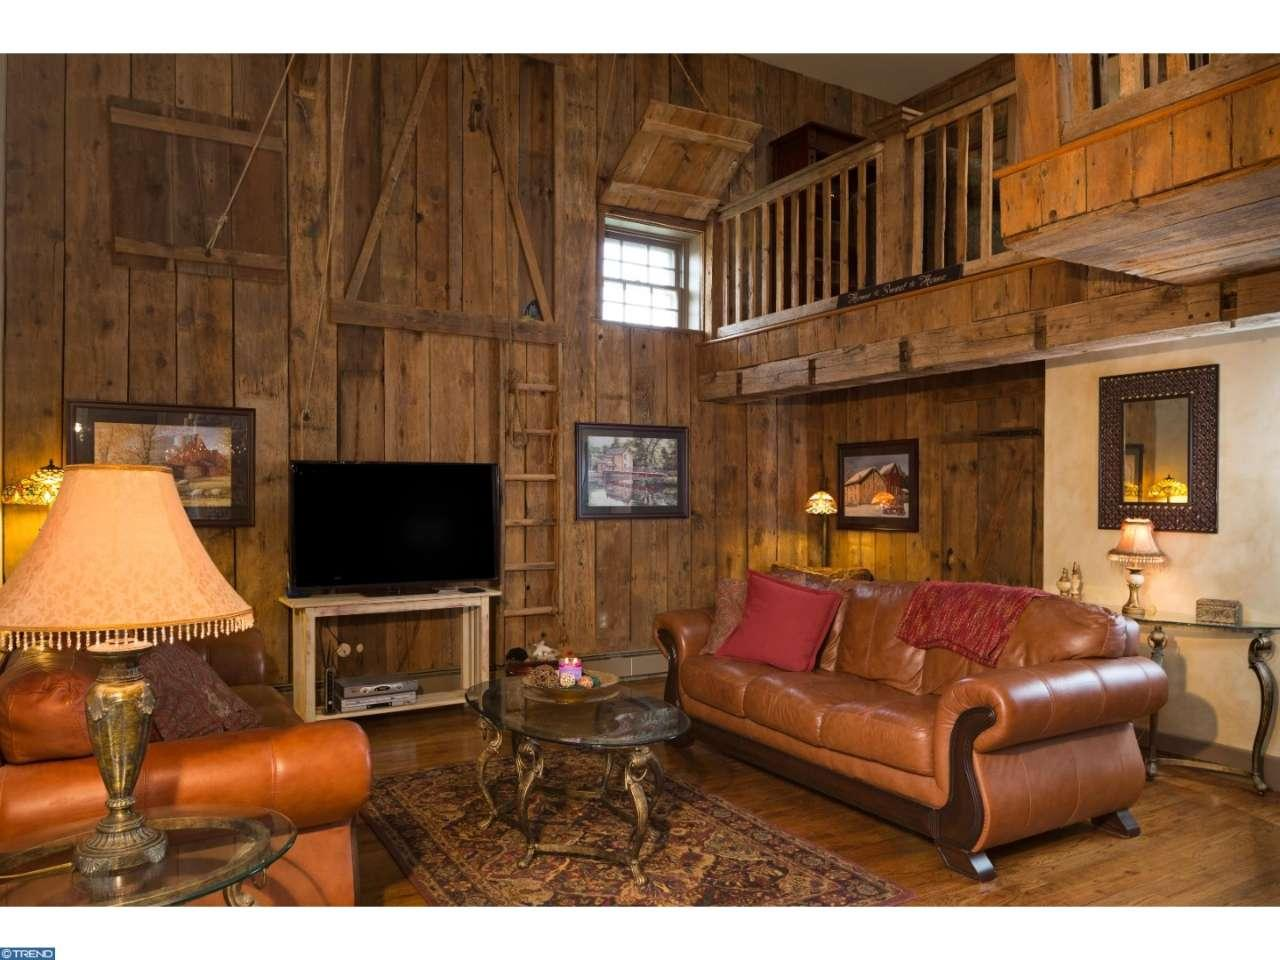 The Leap Year Barn 115 Arrons Ave Doylestown PA for sale - living room